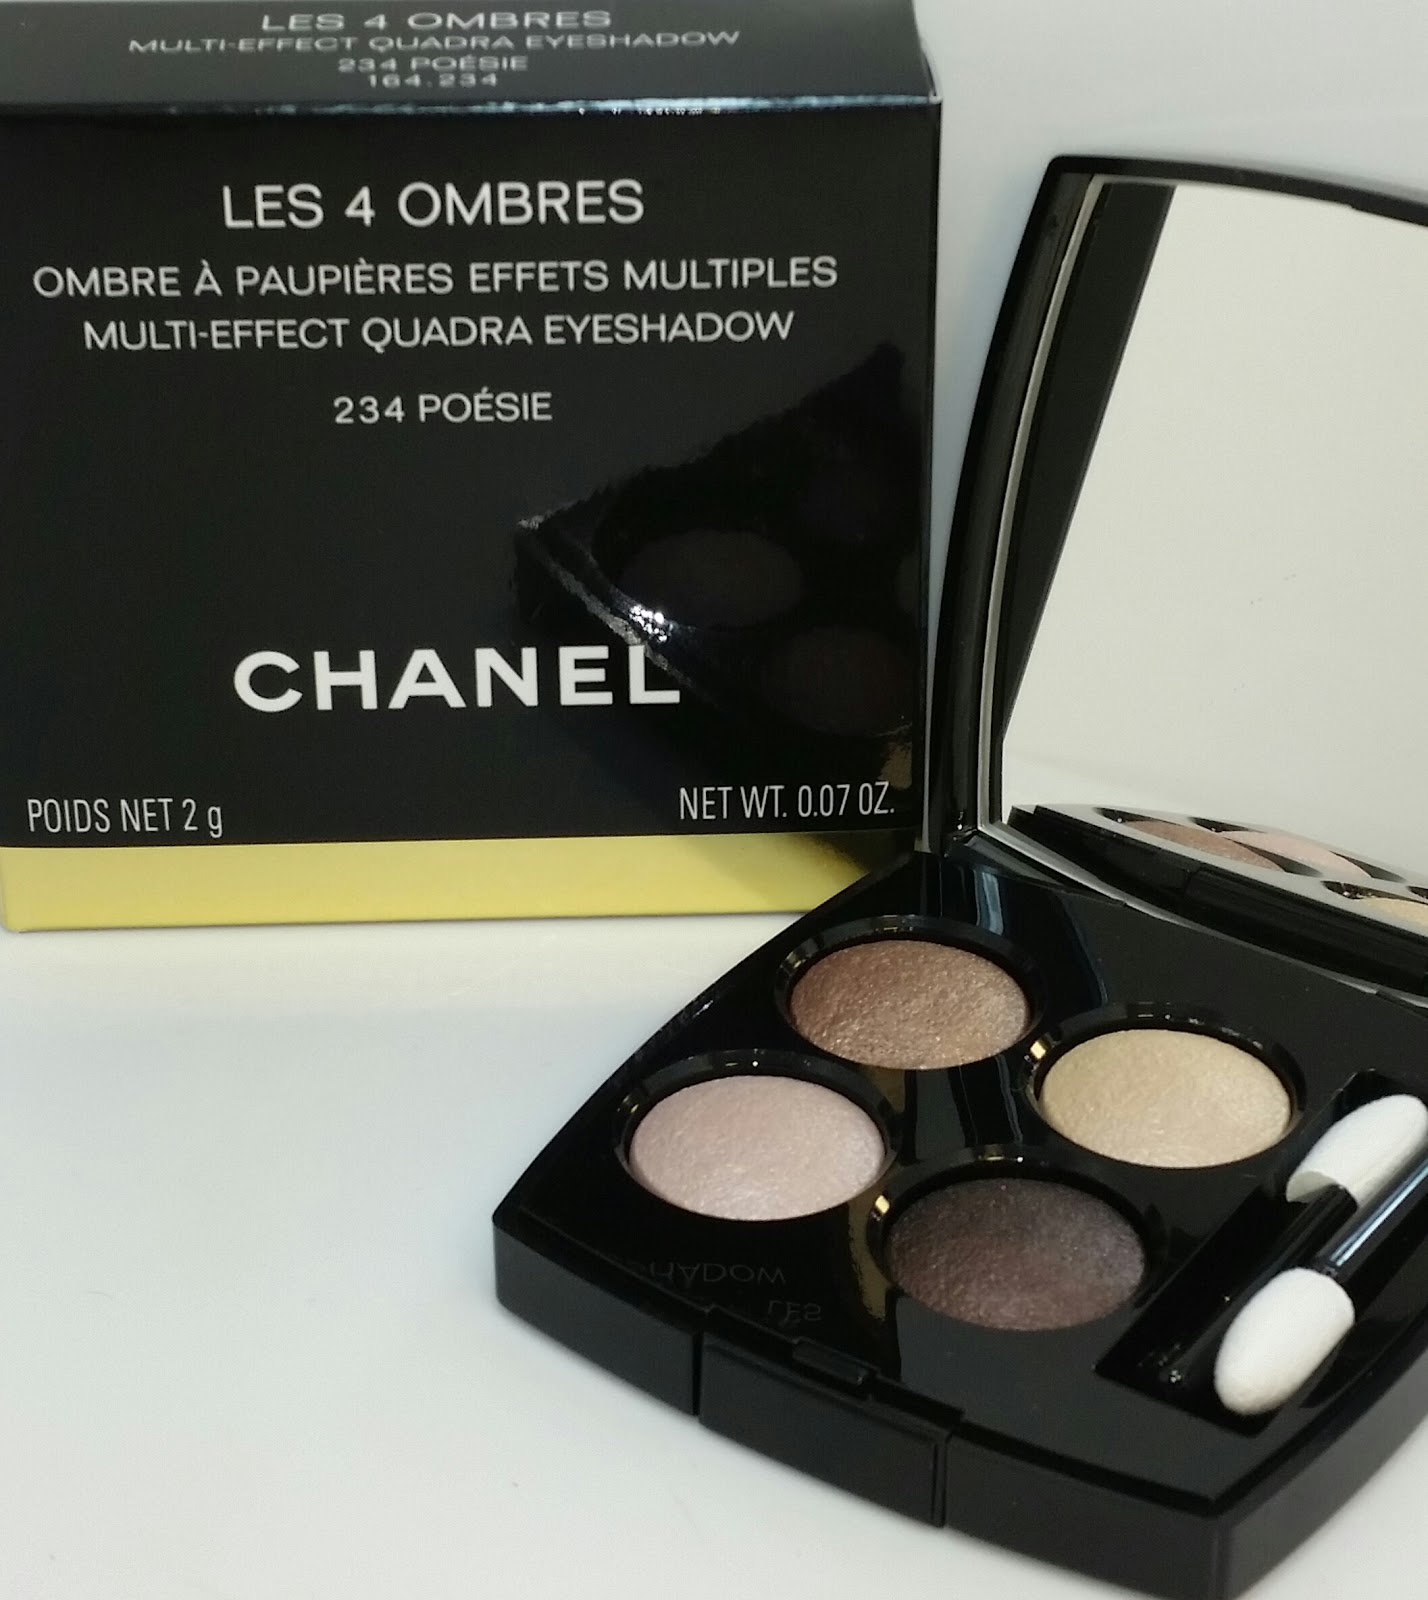 69f8ce9b1a Jayded Dreaming Beauty Blog : 234 POESIE CHANEL LES 4 OMBRES MULTI ...